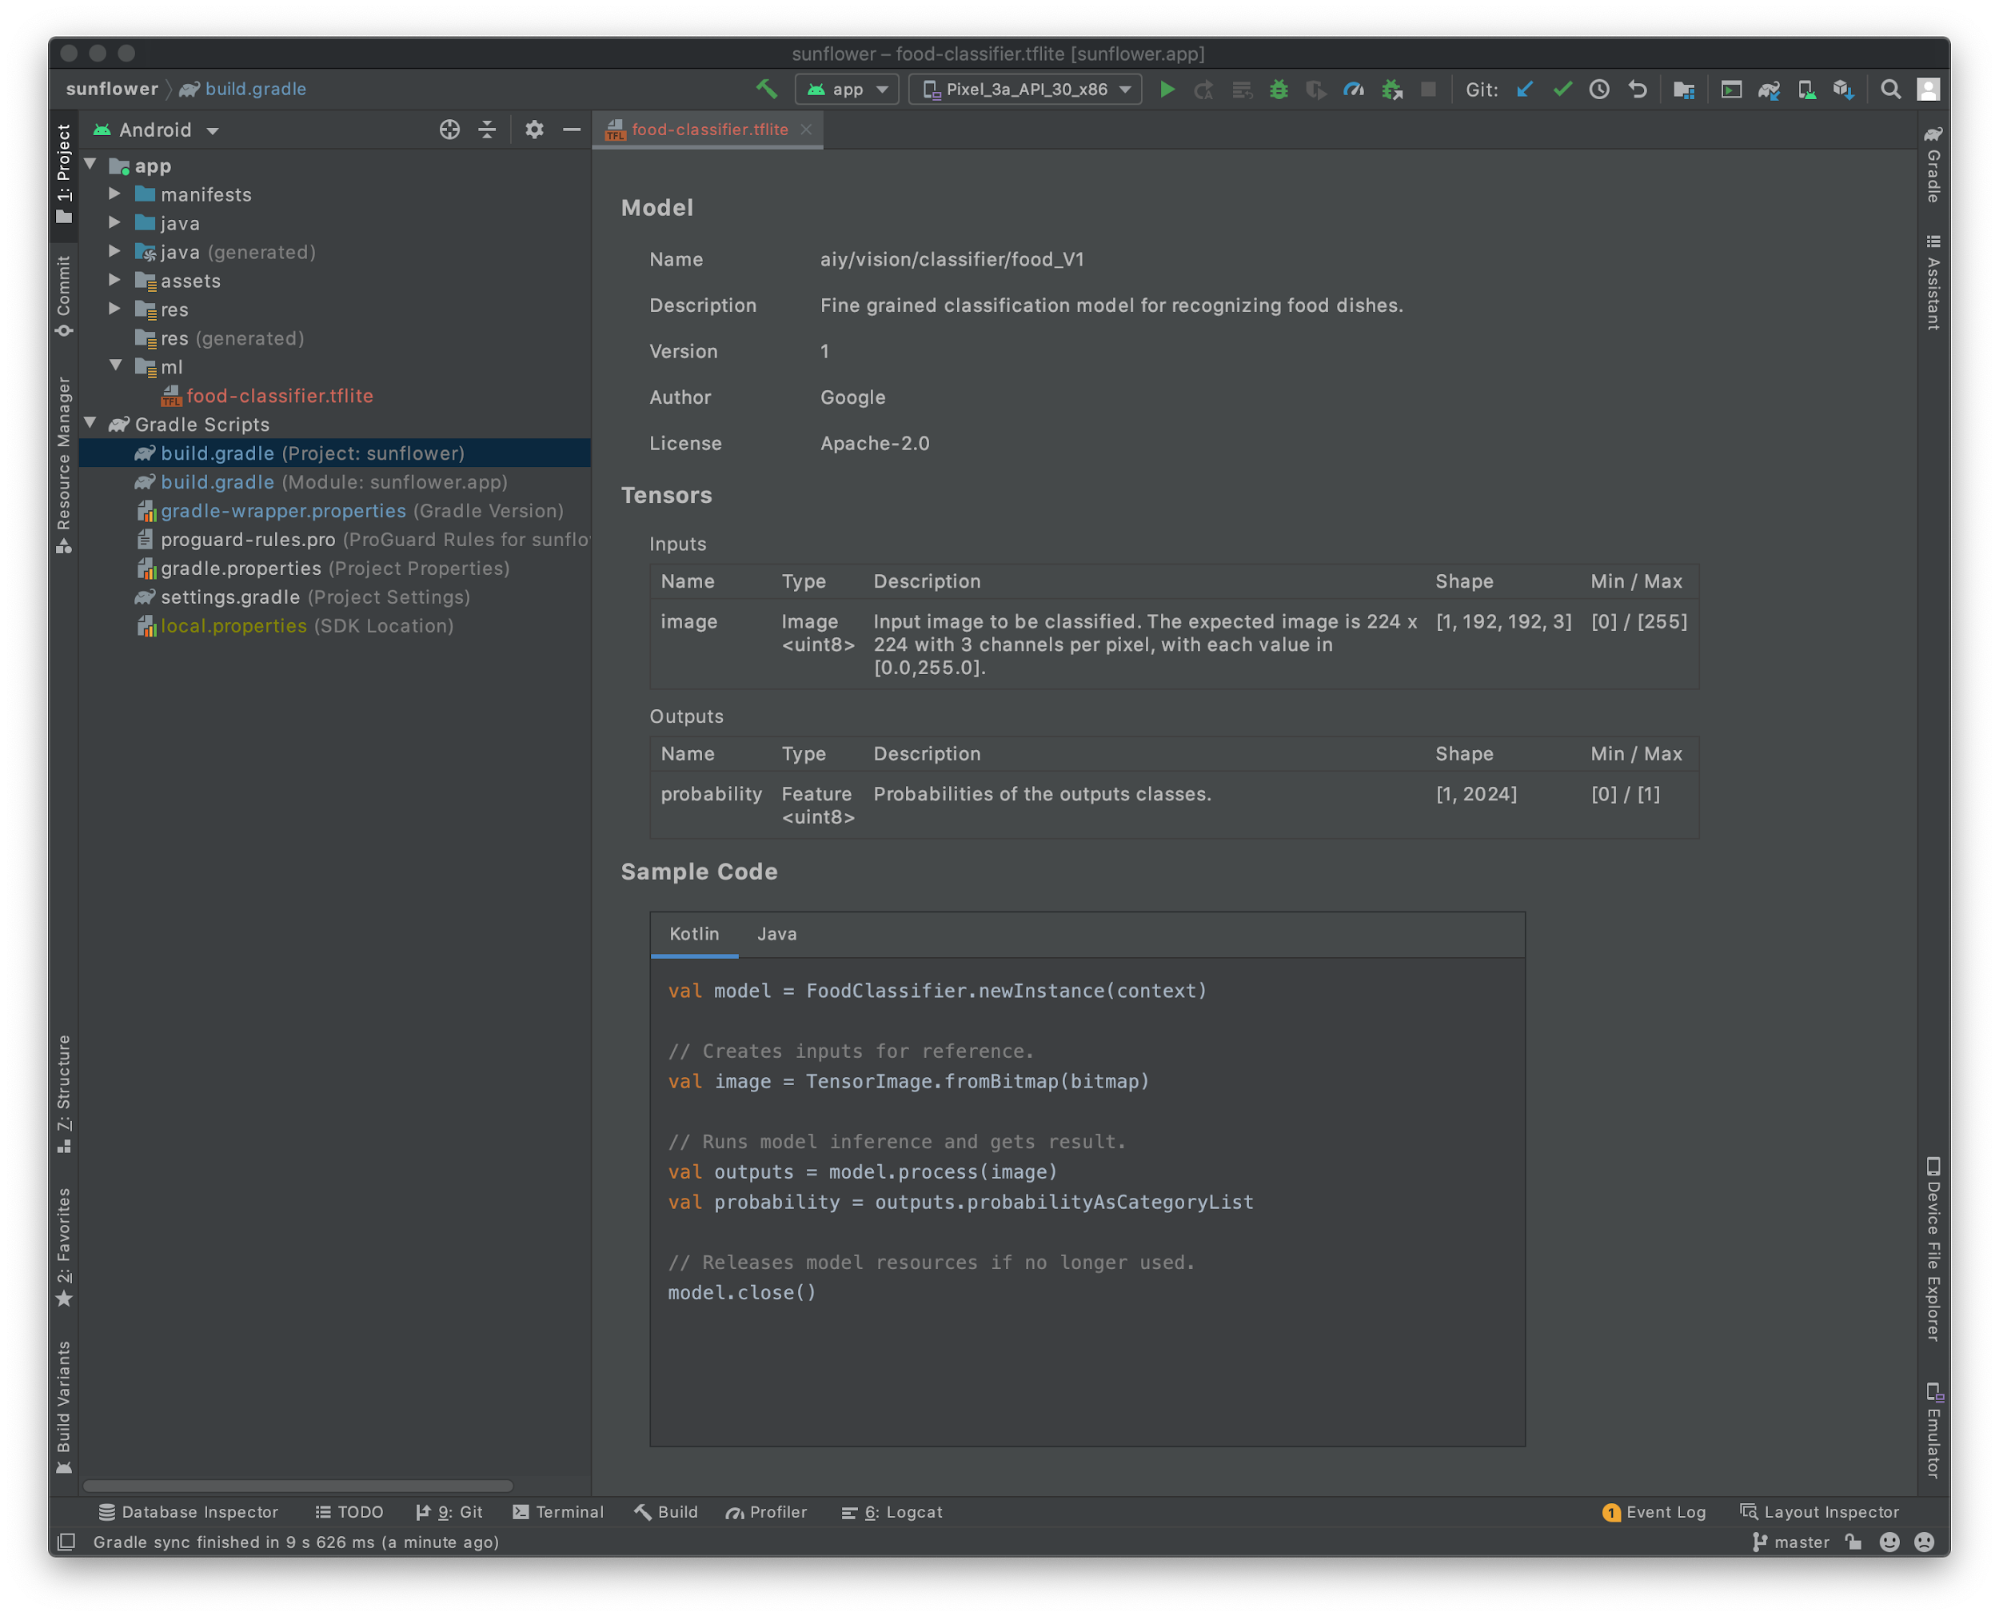 TensorFlow Lite in Android Studio 4.1